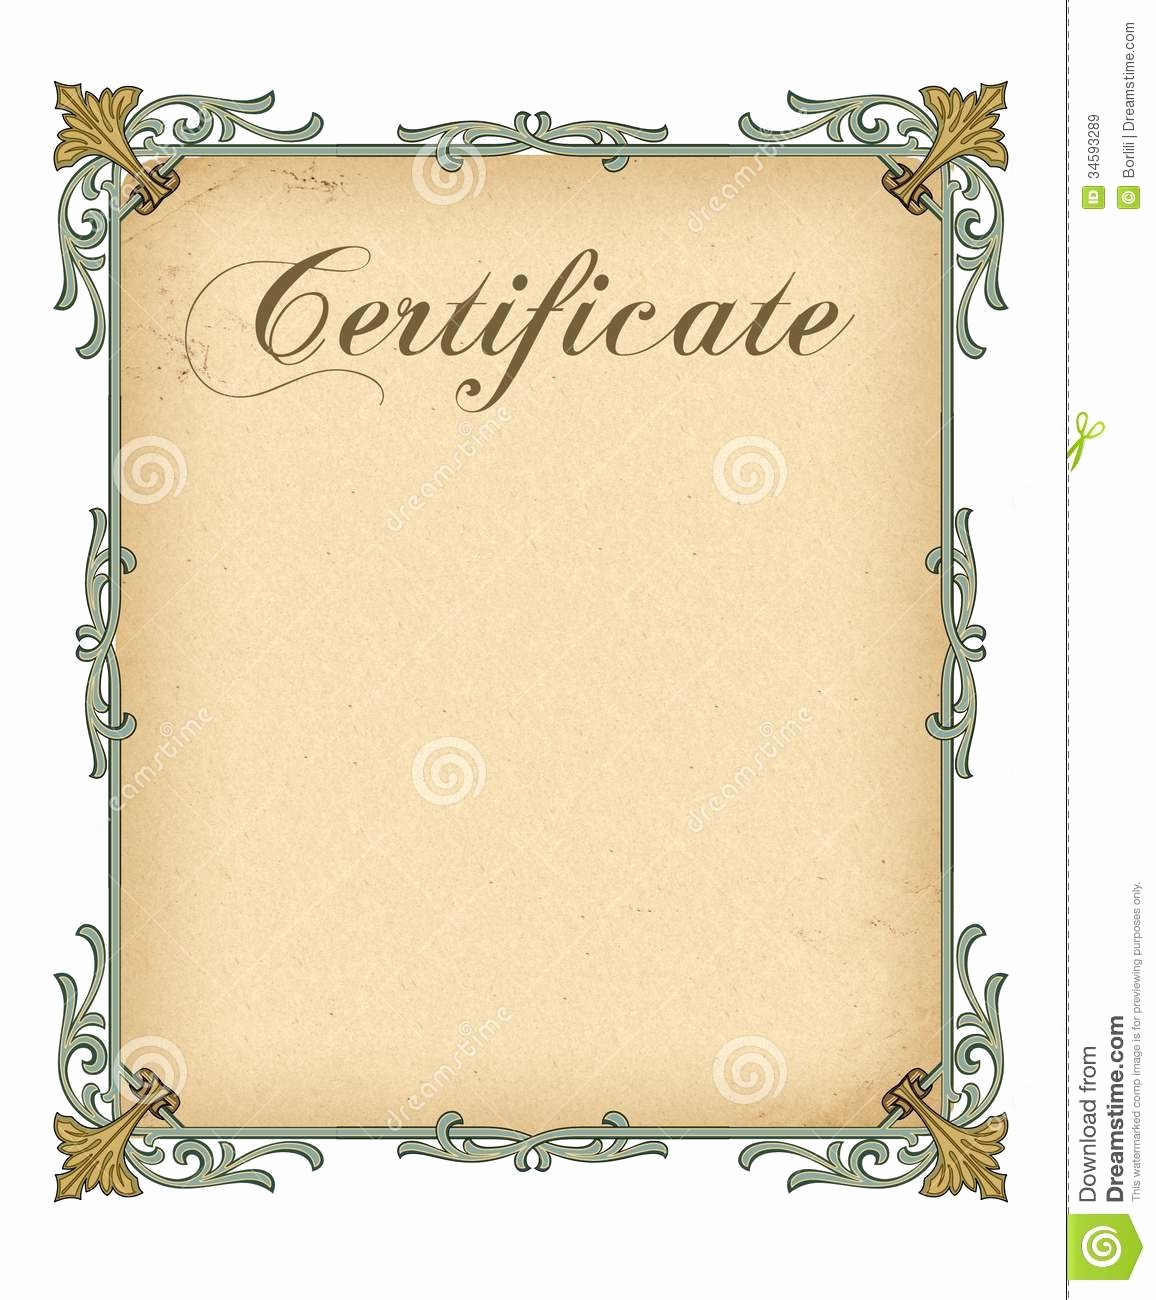 Certificate Design Templates Free Download Fresh Blank Certificate Template Free Download Templates Data